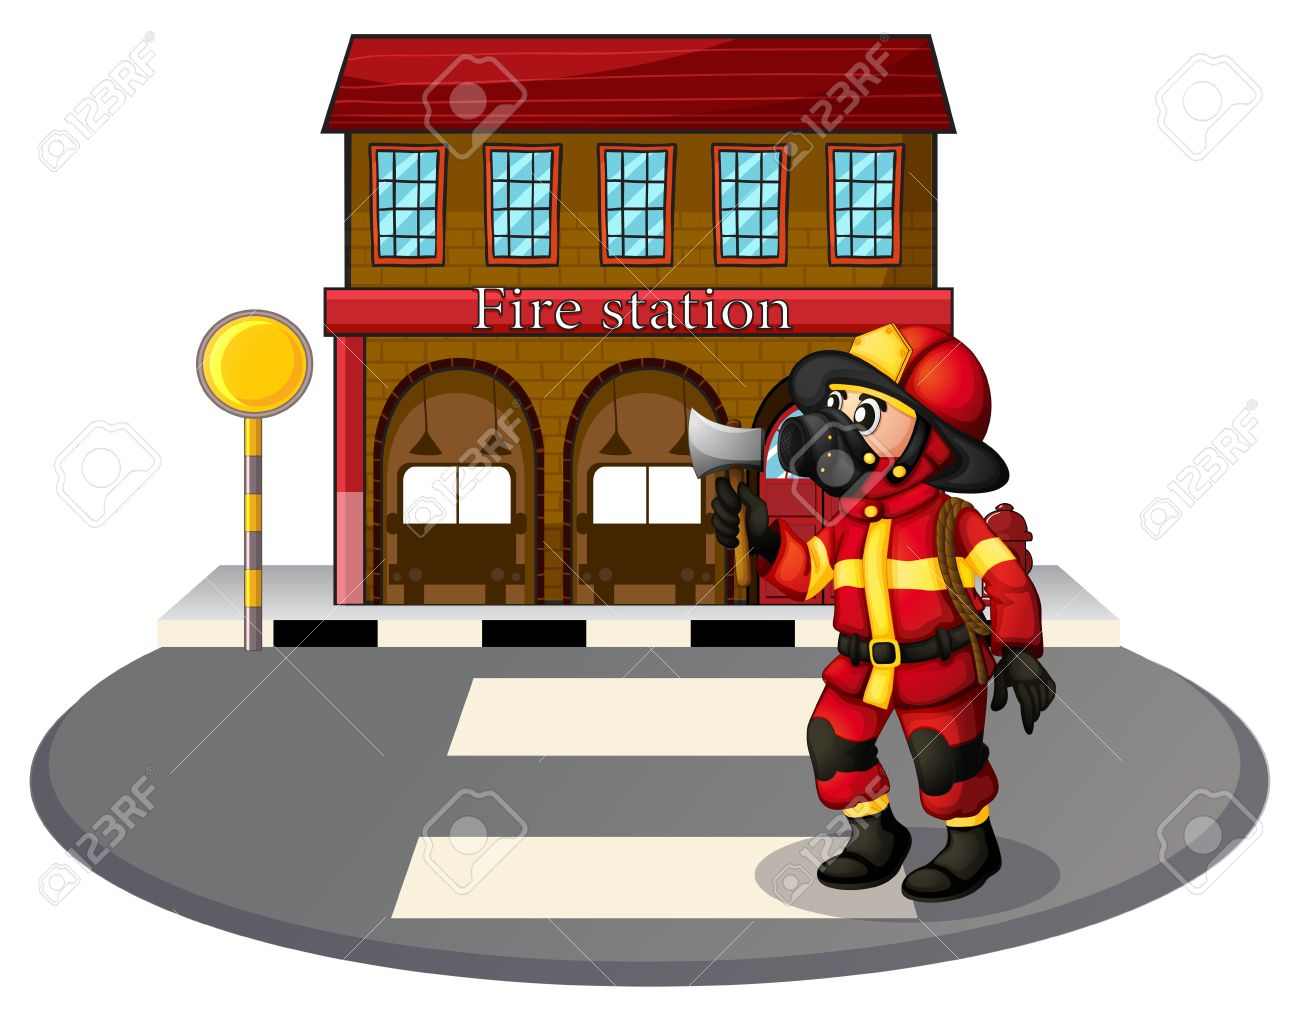 hight resolution of illustration of a fireman in front of the fire station on a white background stock vector